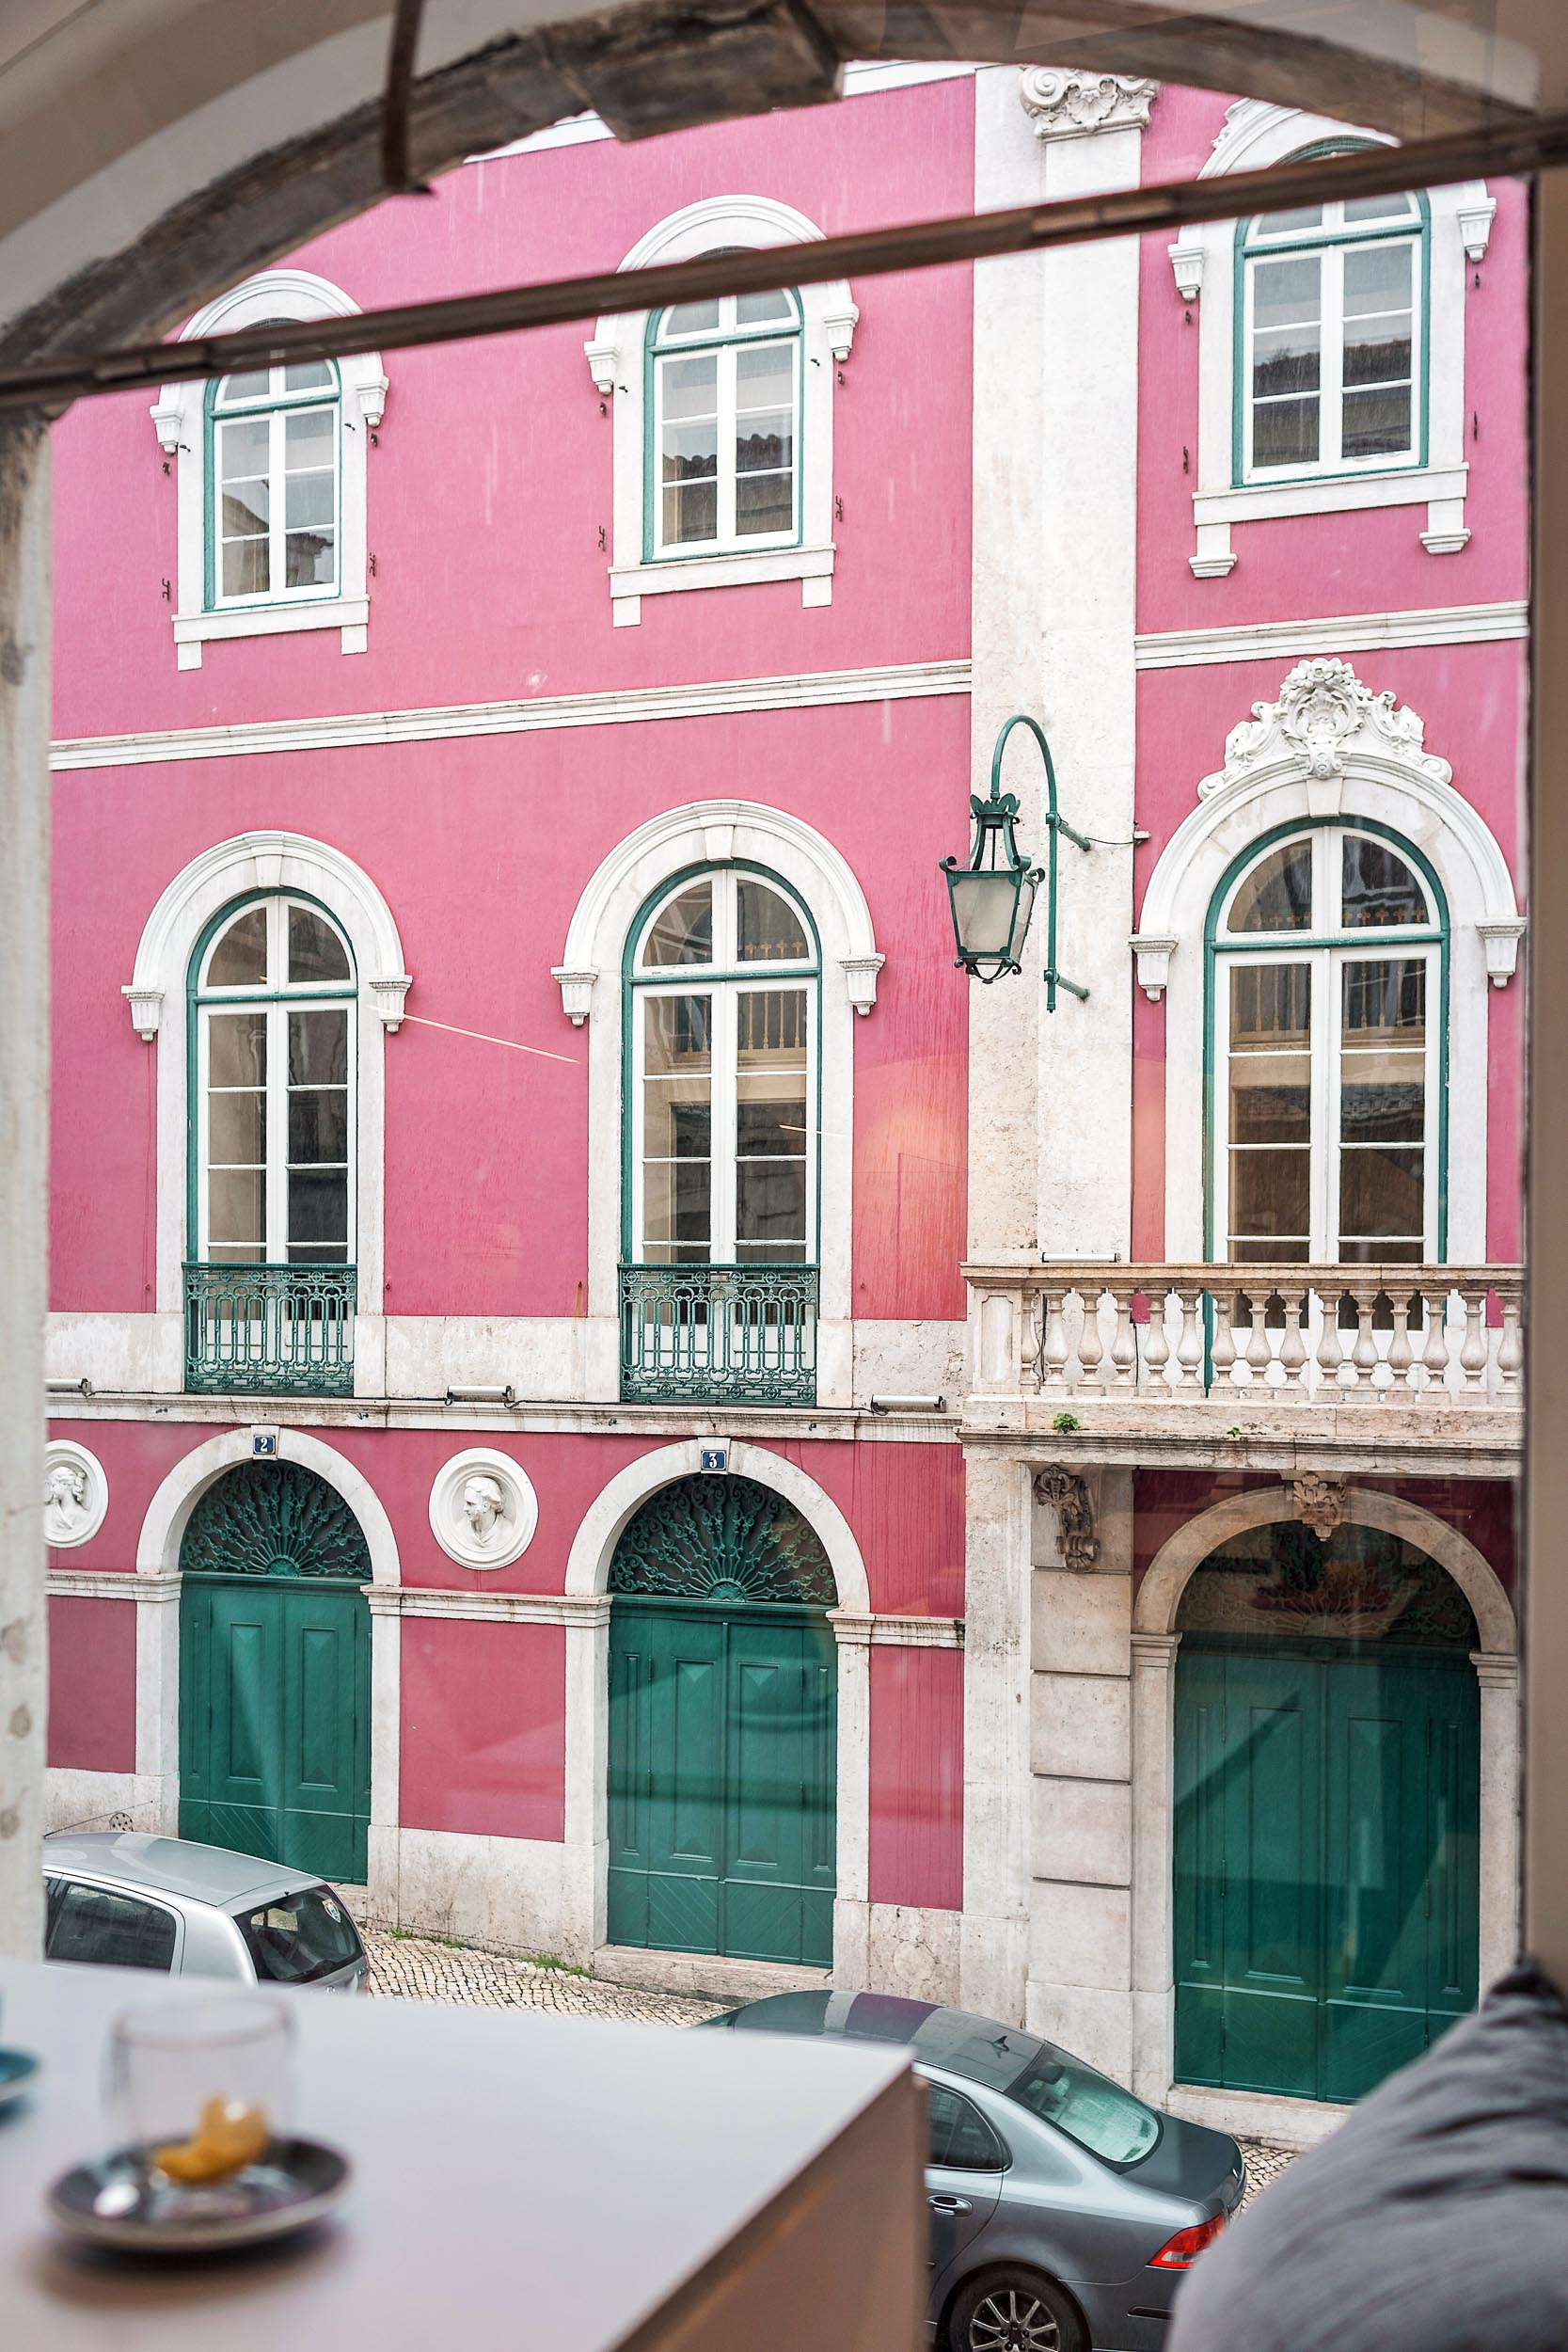 The view from Wish Slow Coffee House in Chiado, Lisbon, Portugal